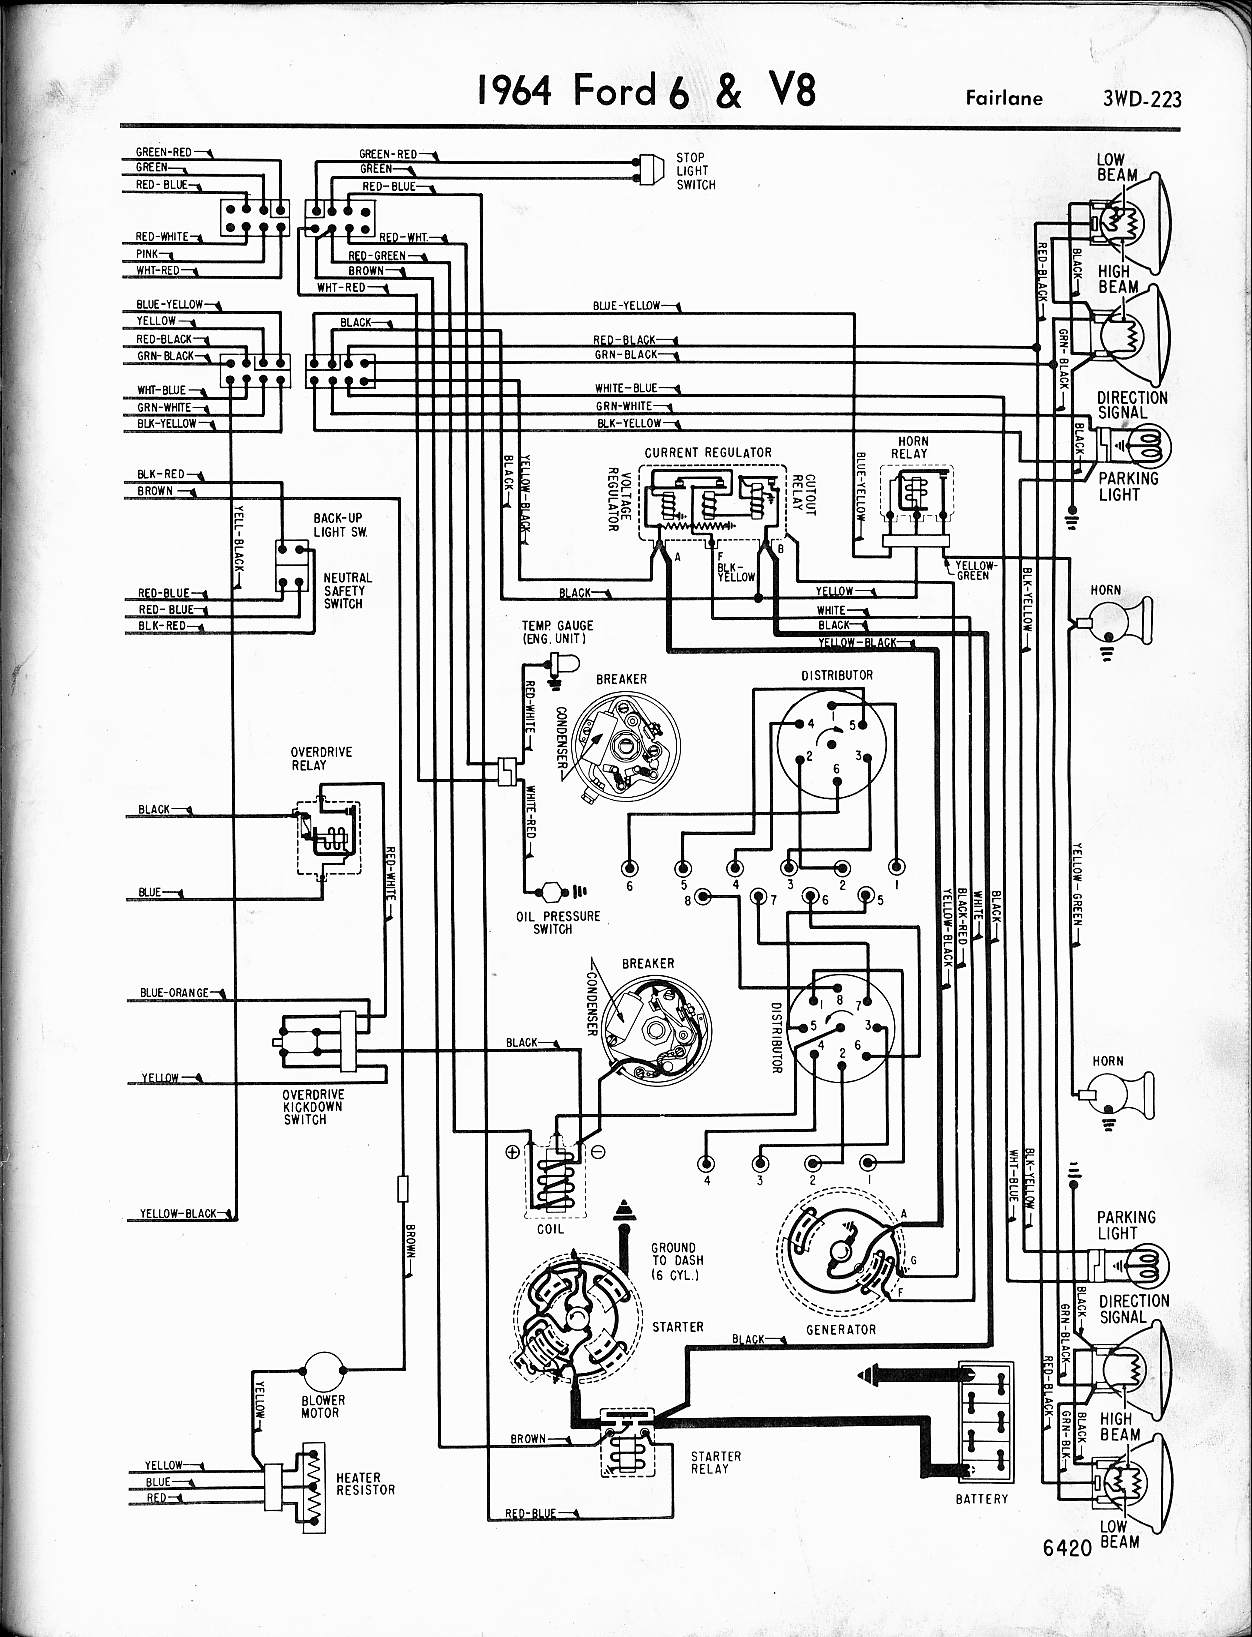 i need an electrical schematic for a 1964 ford falcon 63 falcon wiring diagram lights 1964 falcon wiring diagram